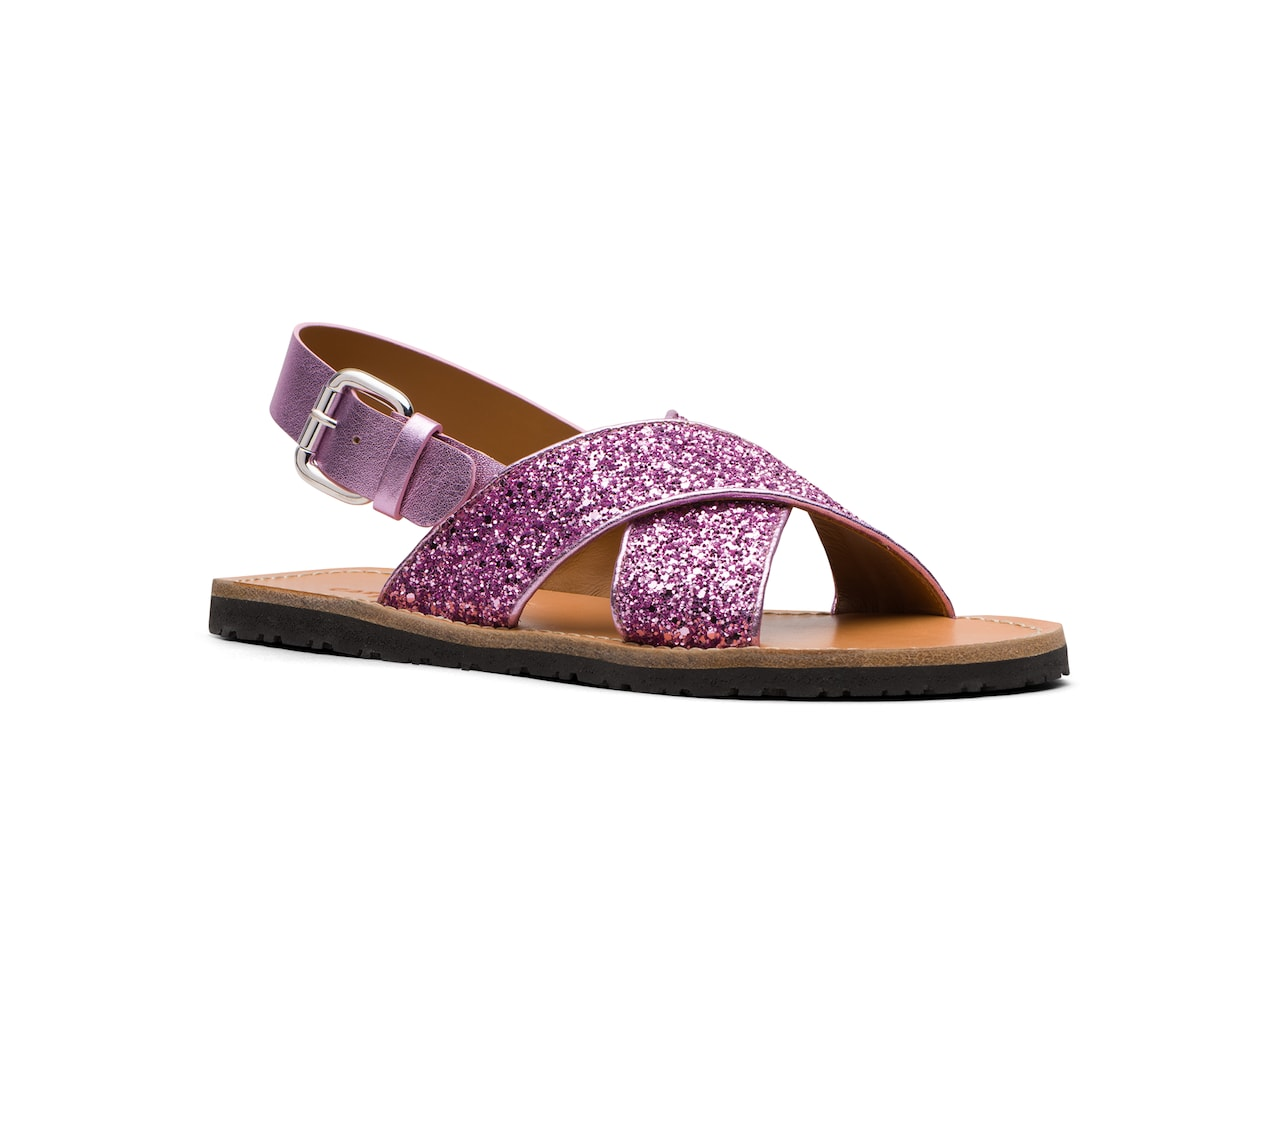 SANDALS IN GLITTER AND LEATHER PINK